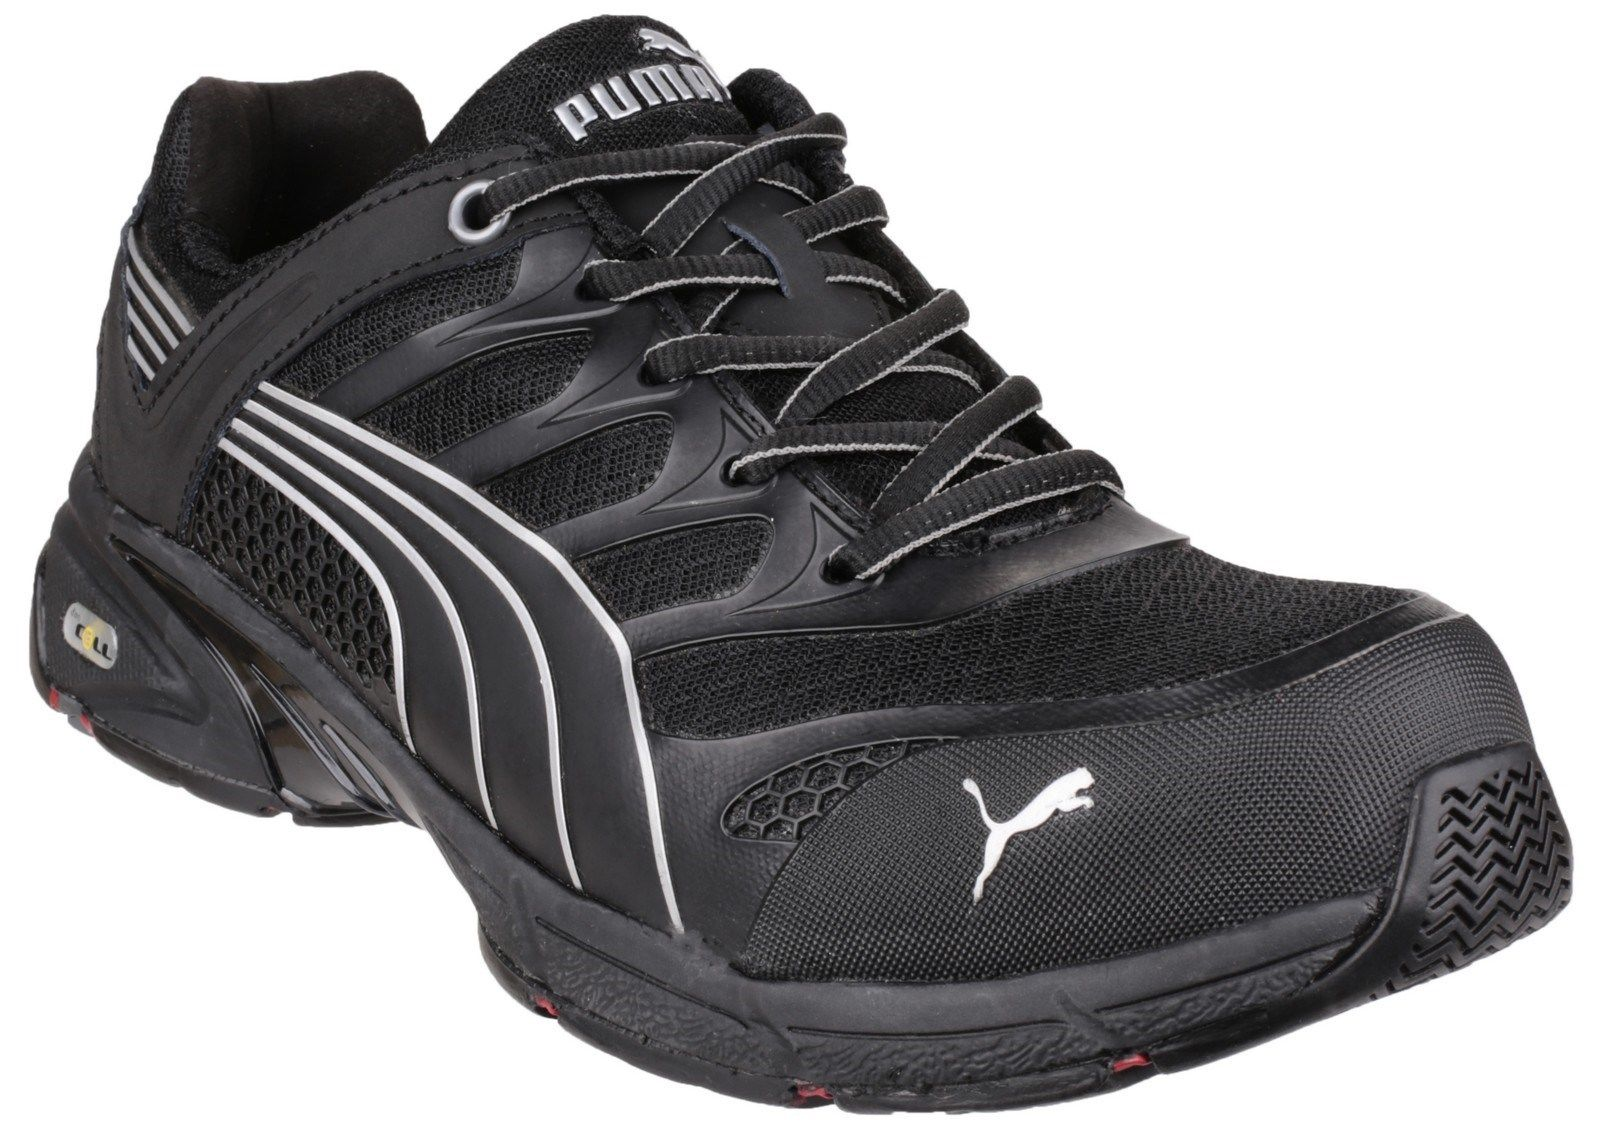 PUMA FUSE MOTION LOW Safety Trainers w/ Breath Active lining